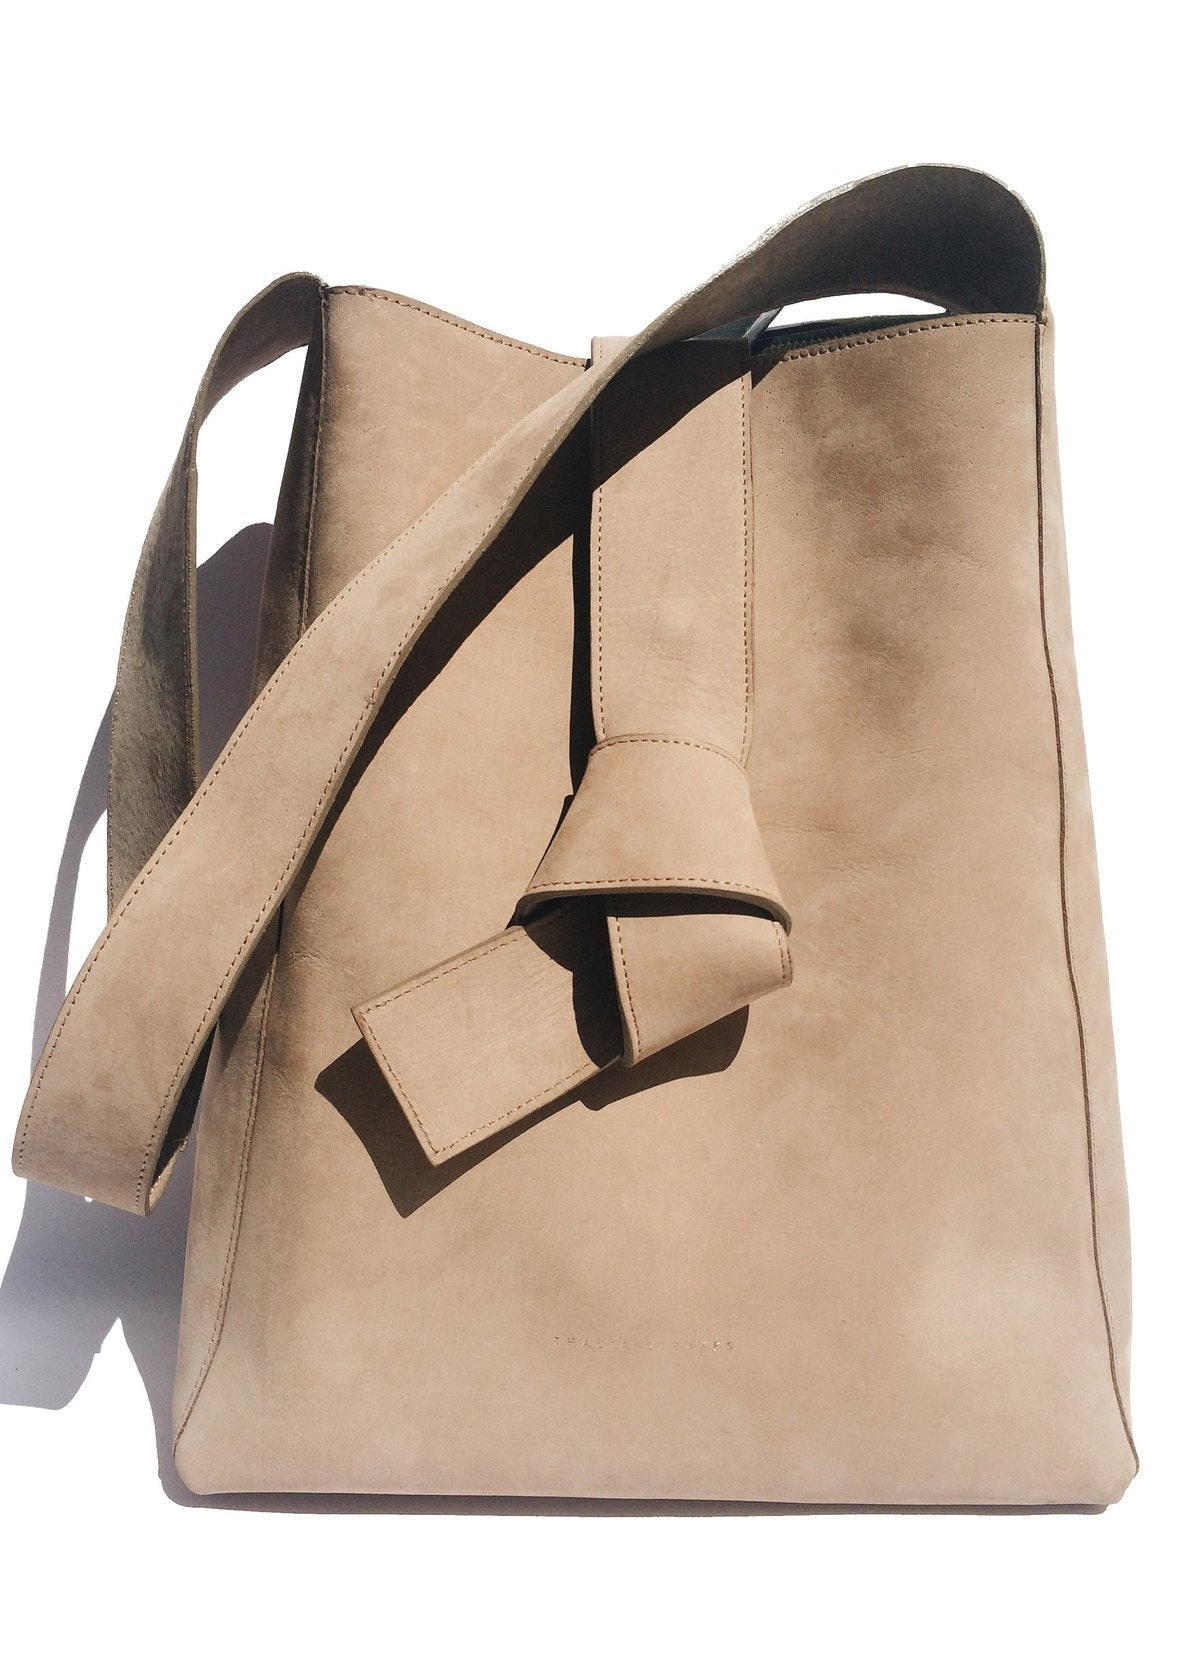 Beige Geneva bag from Thalia Strates, available to shop on The Folklore.